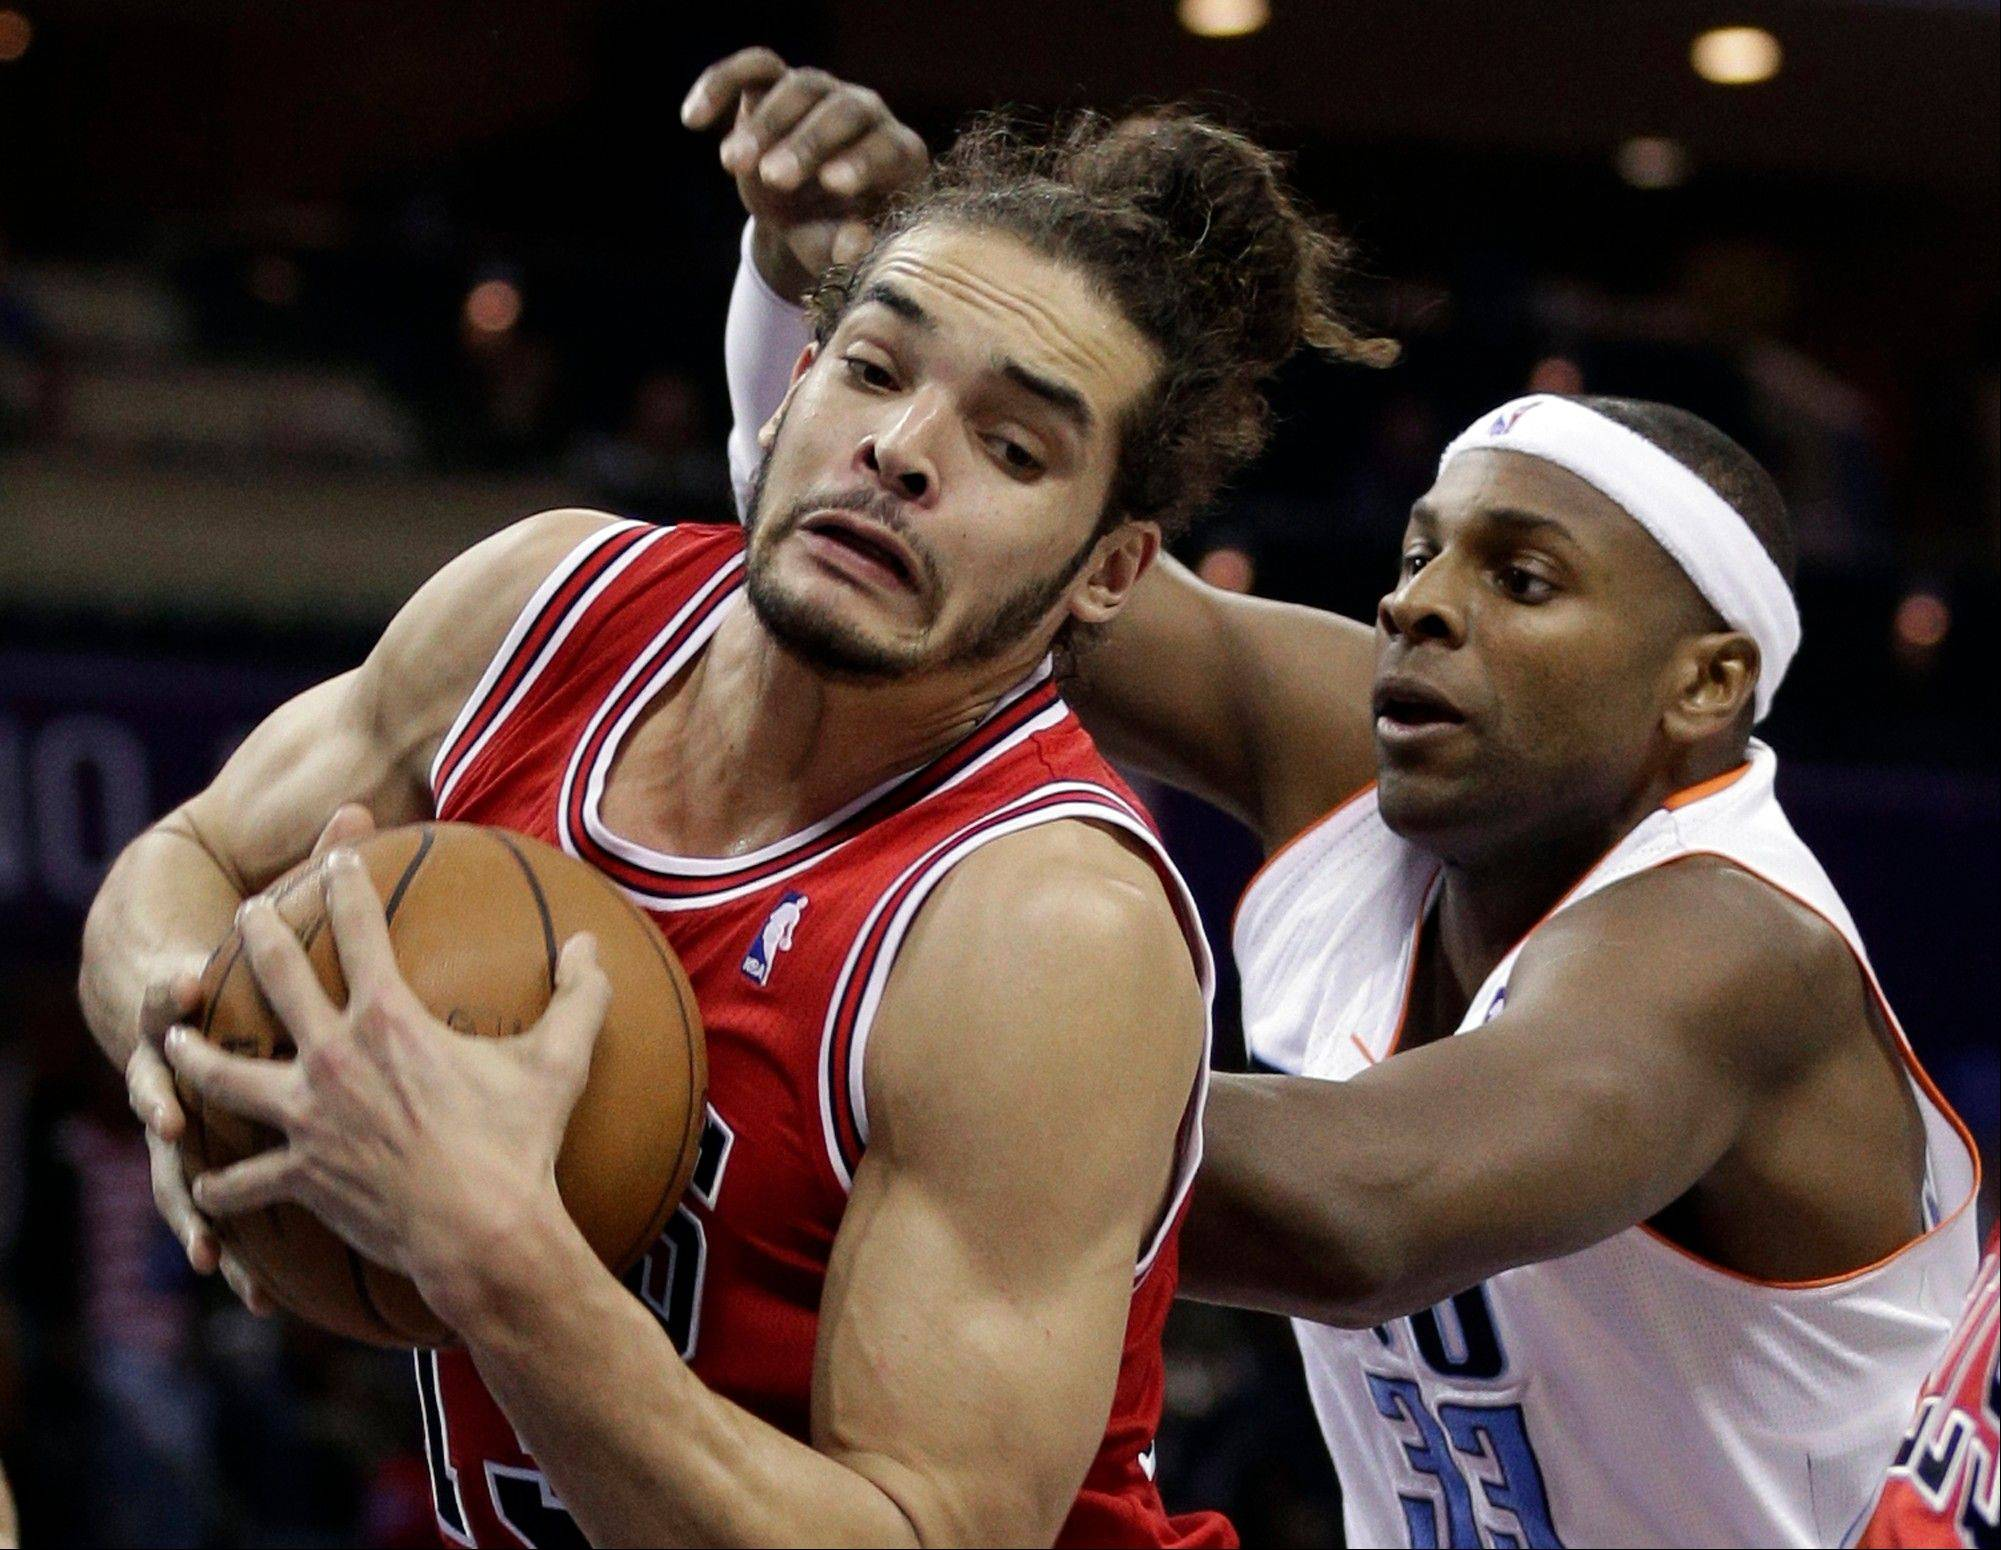 Chicago Bulls' Joakim Noah, left, grabs a rebound as Charlotte Bobcats' Brendan Haywood, right, defends during the first half of an NBA basketball game in Charlotte, N.C., Friday, Feb. 22, 2013. (AP Photo/Chuck Burton)